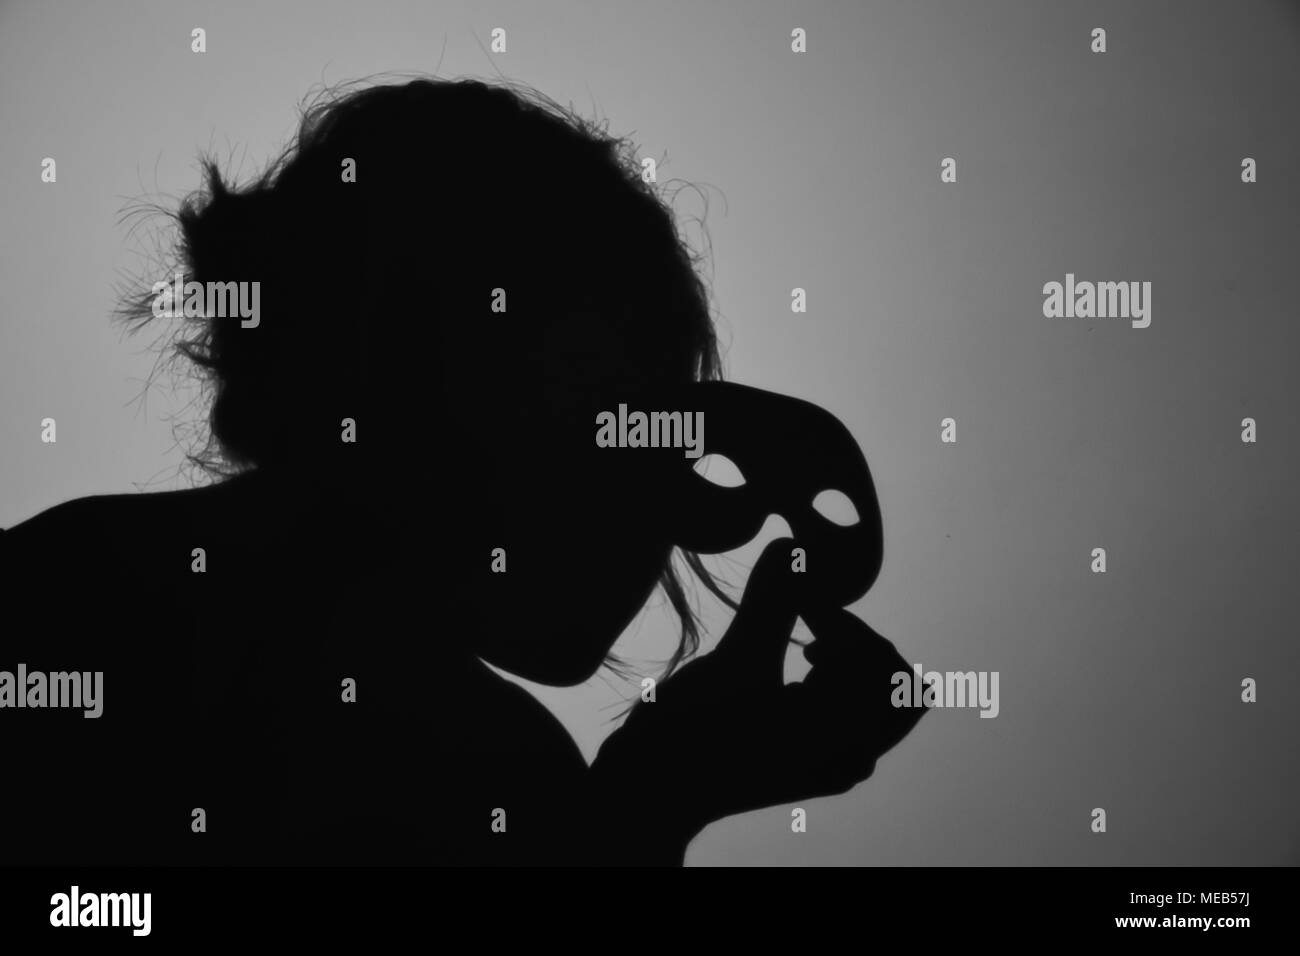 A black and white photography representing a shadow of a female holding a mask. - Stock Image